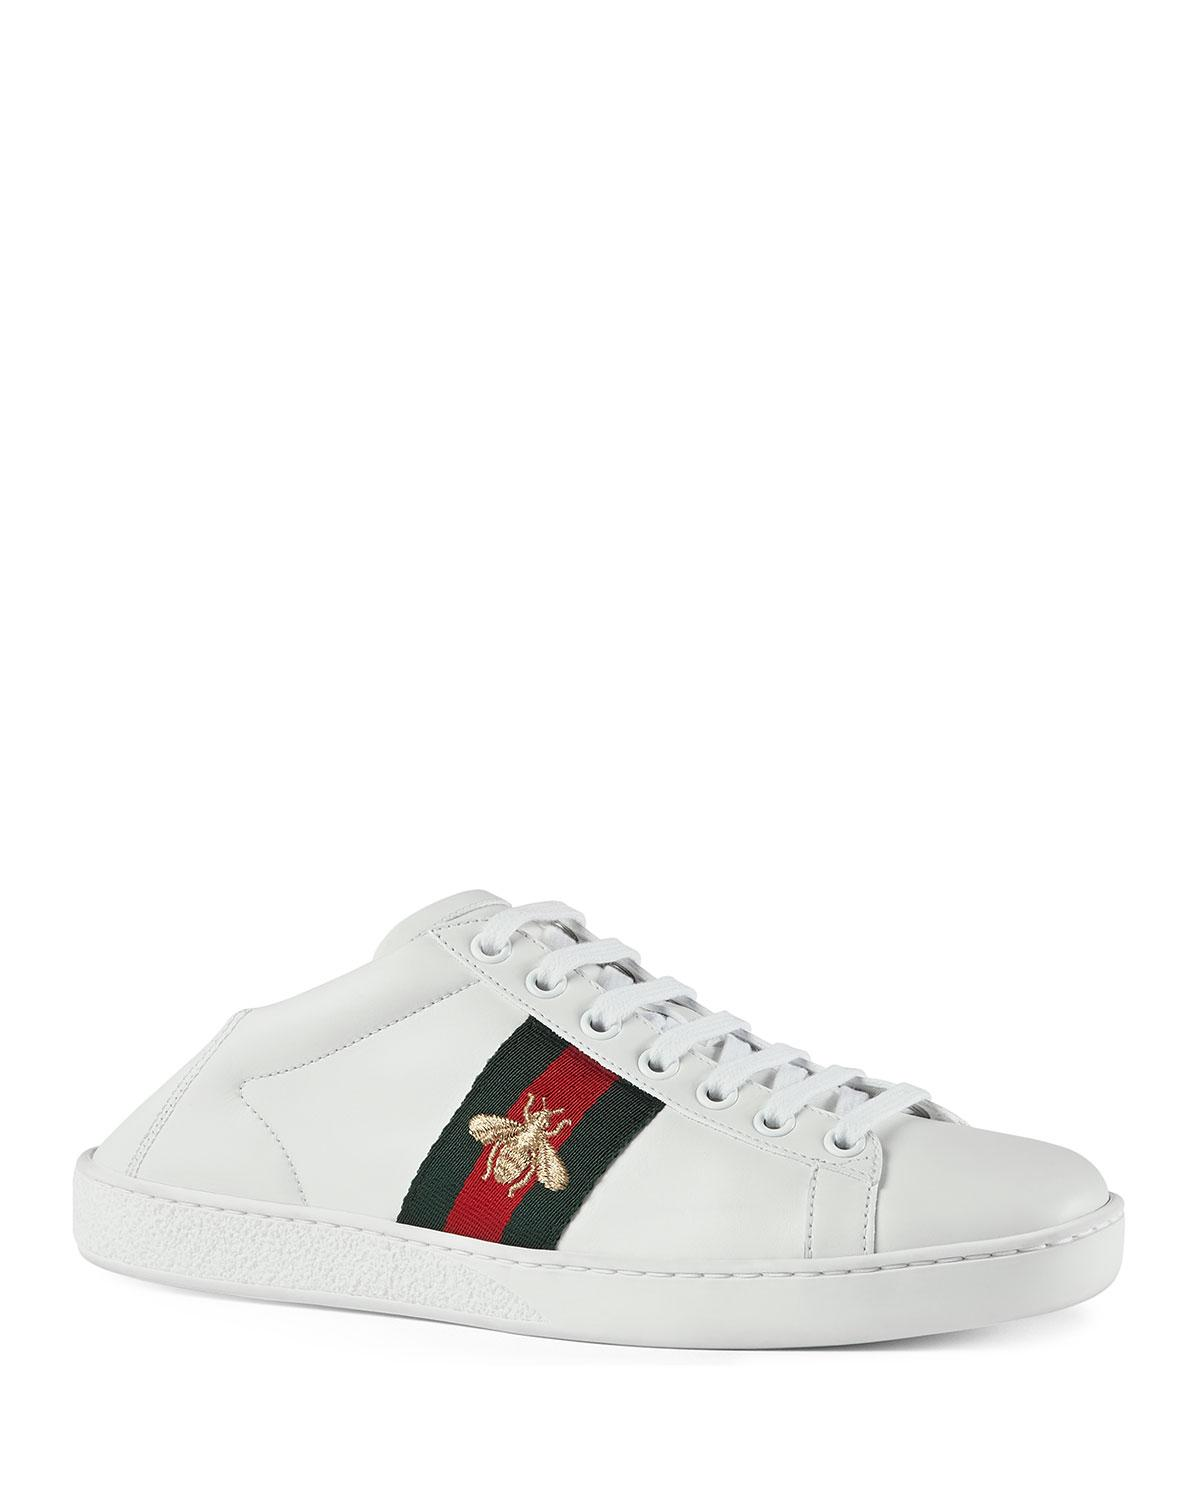 fdb5bfe266b Lyst - Gucci Bee Web Sneakers in White